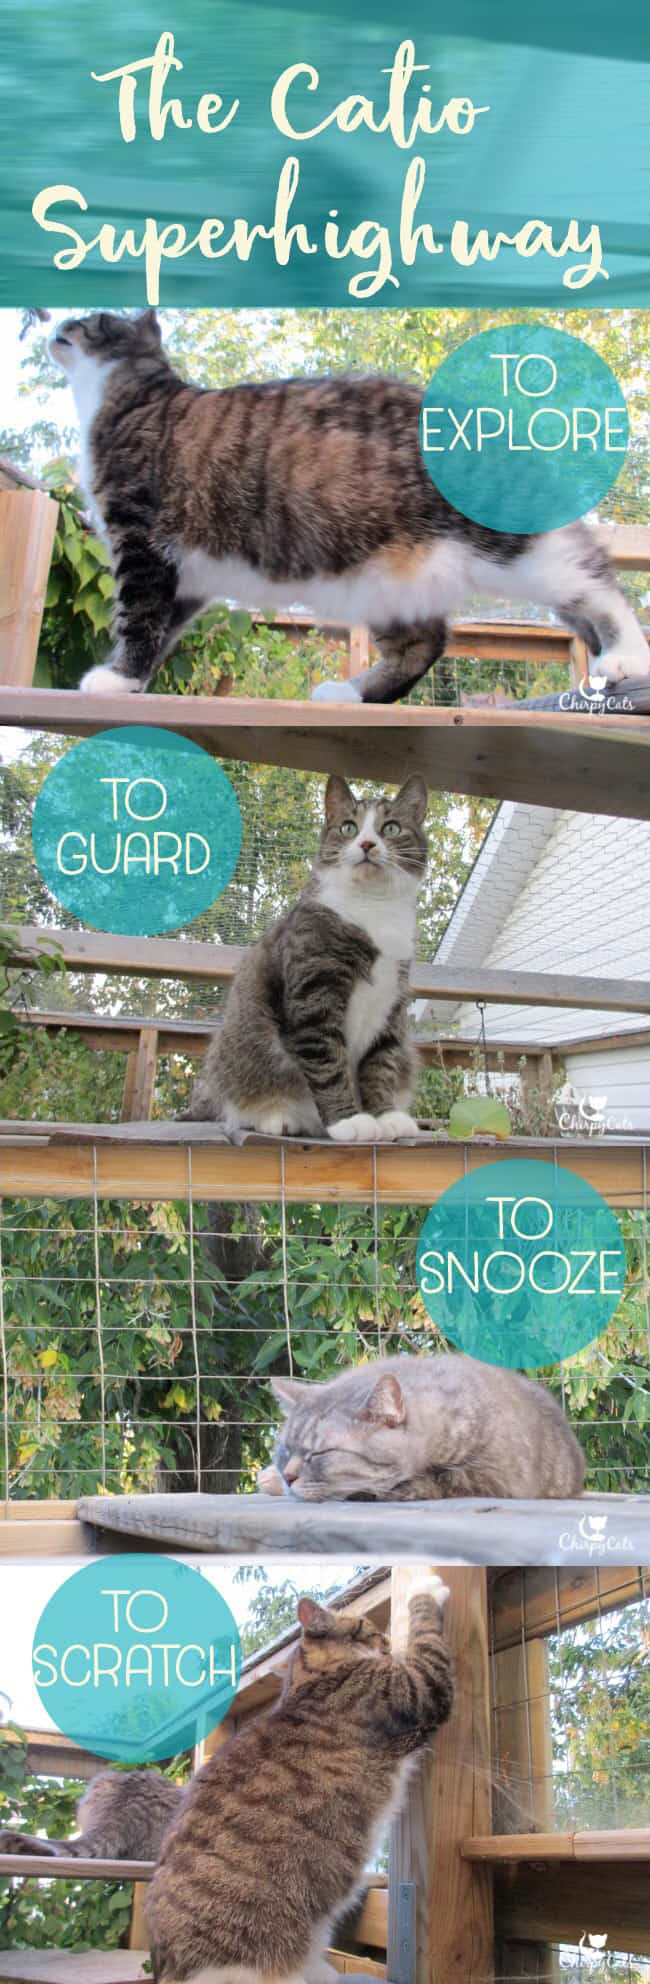 Why your cat needs a catio superhighway. Let's go up!